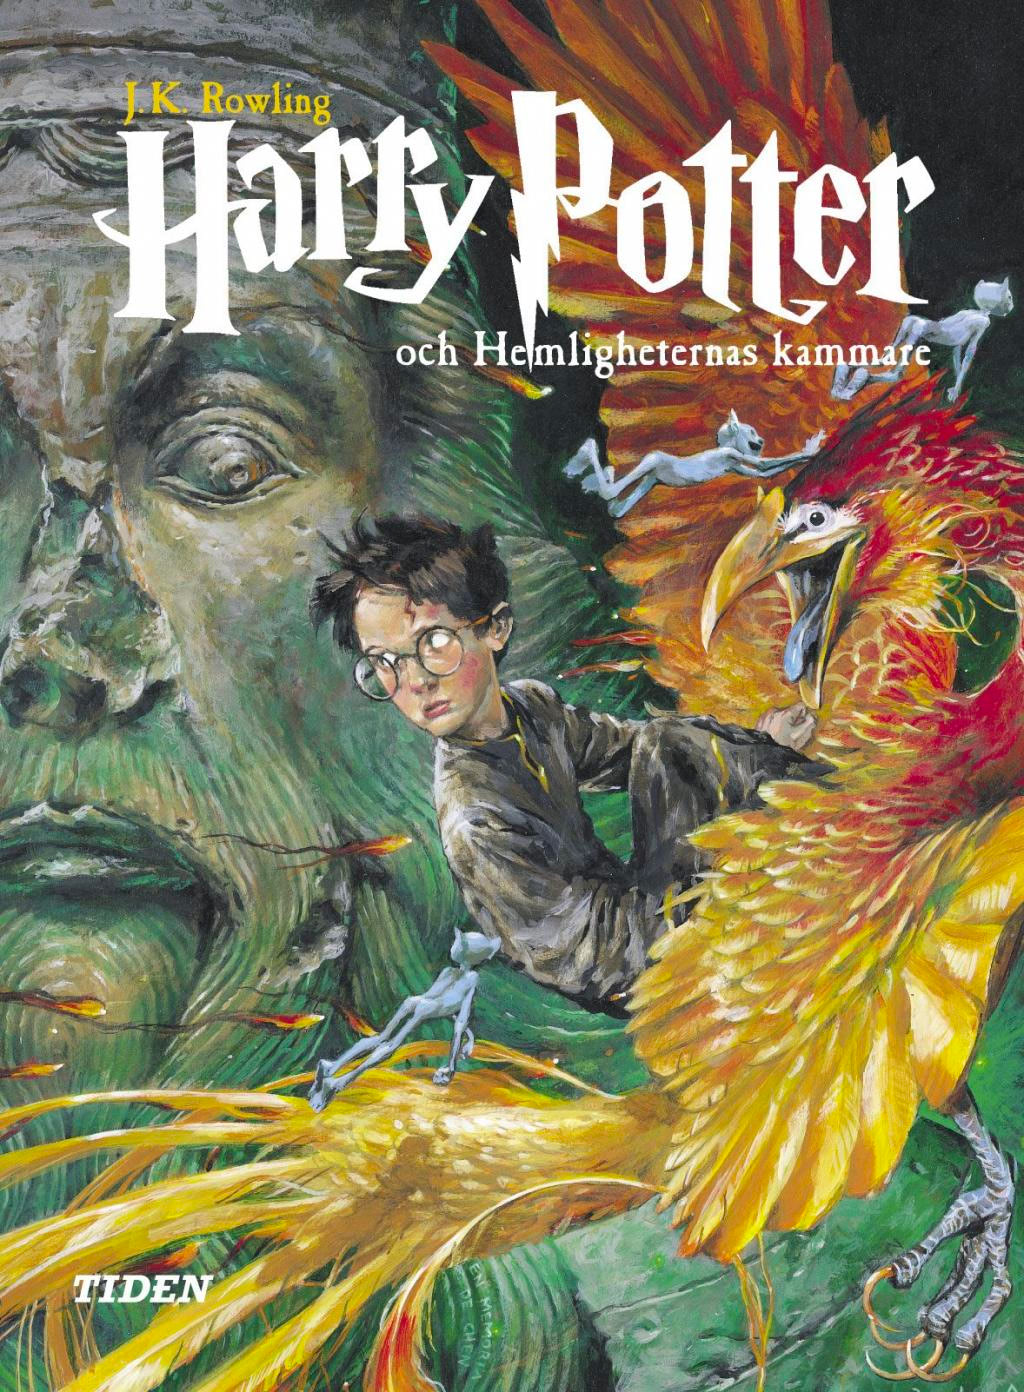 'Chamber of Secrets' Swedish edition